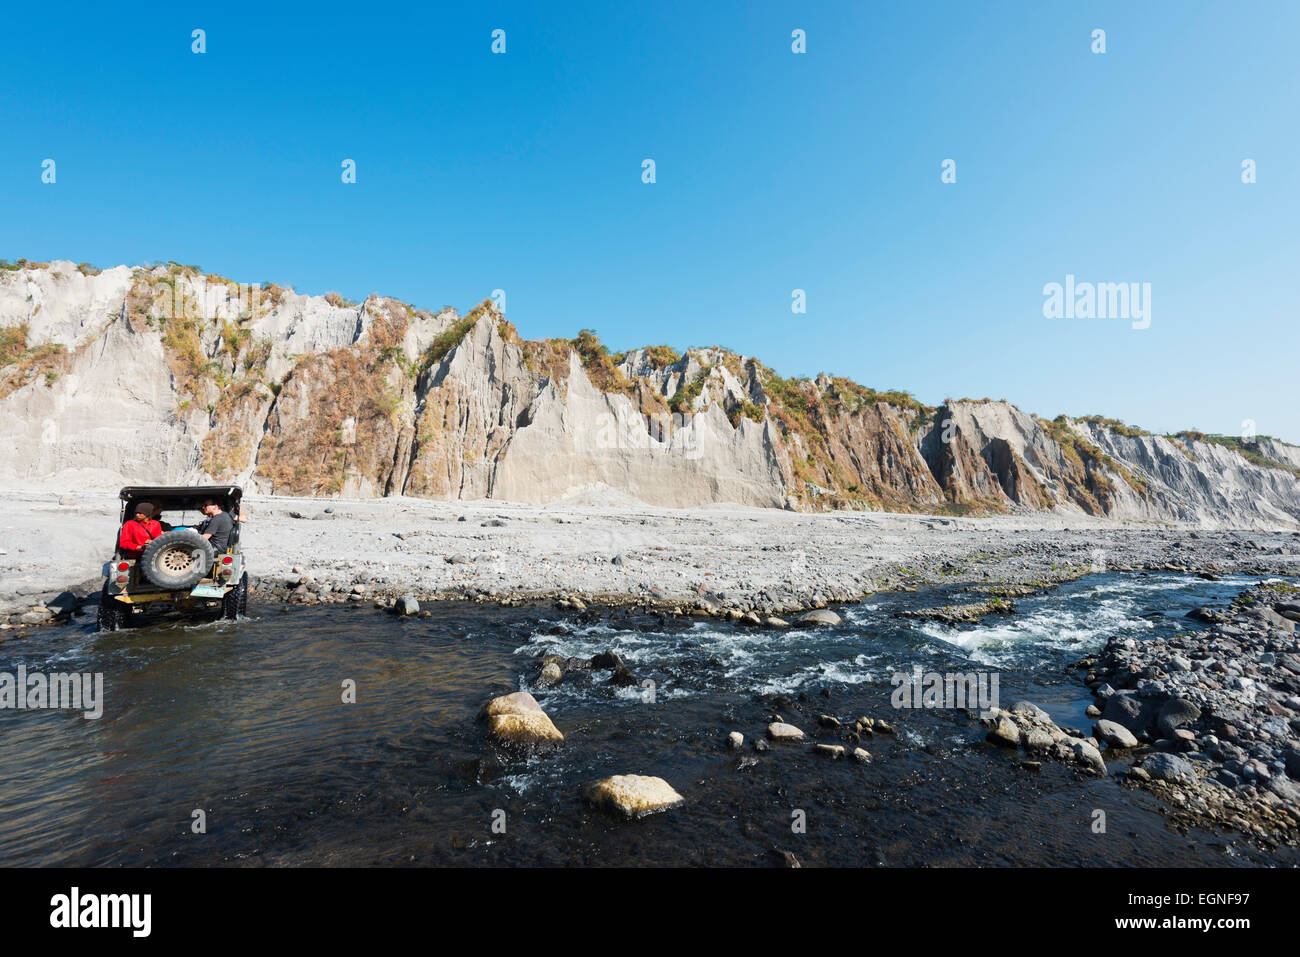 South East Asia, Philippines, Luzon, Pinatubo volcano  4WD tour - Stock Image